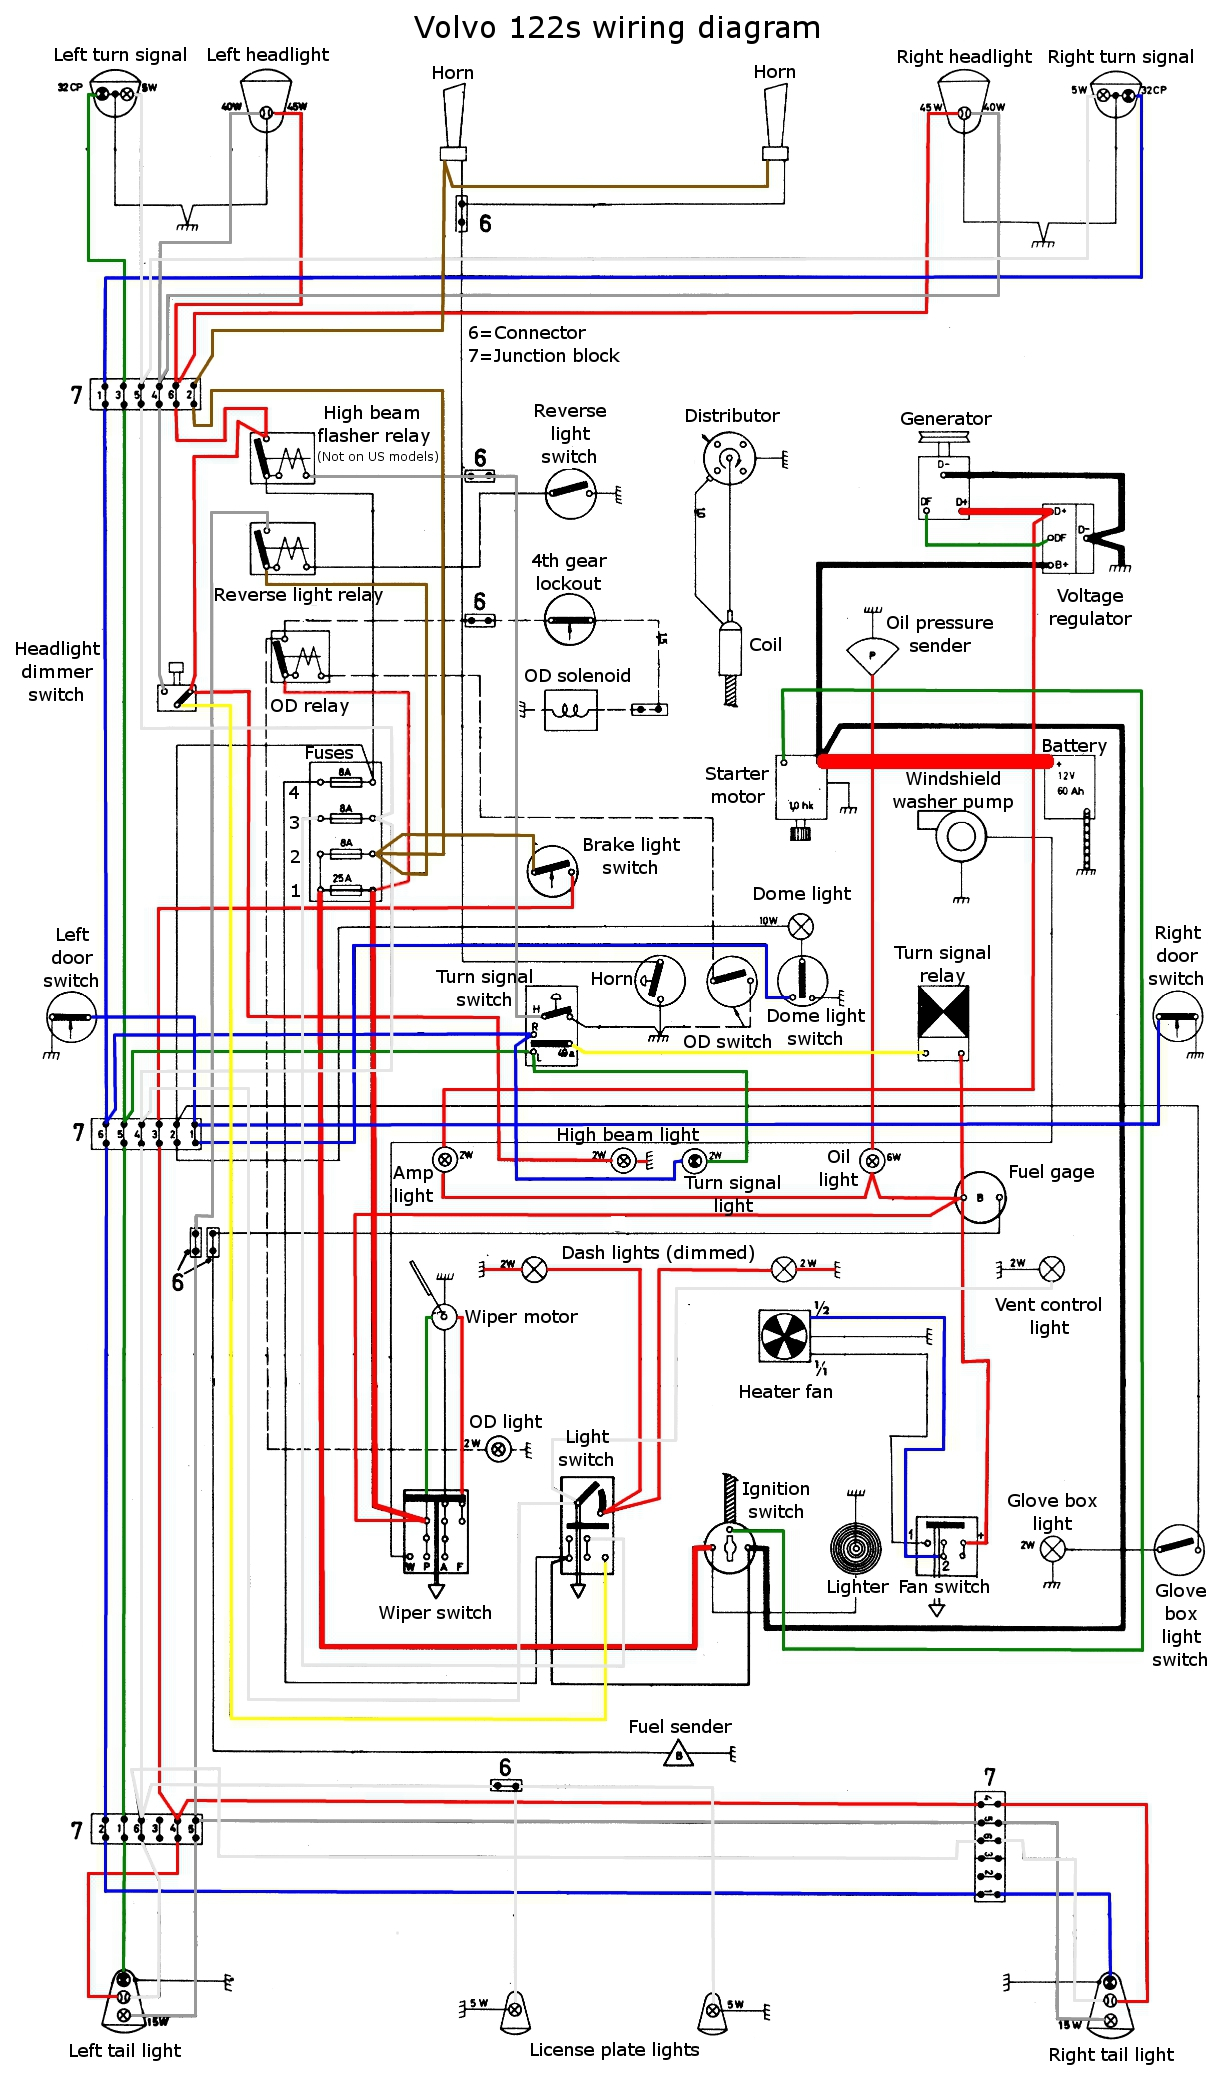 122 wiring diagram color 2005 volvo s40 wiring diagram volvo s40 steering diagram \u2022 wiring GM Radio Wiring Diagram at edmiracle.co